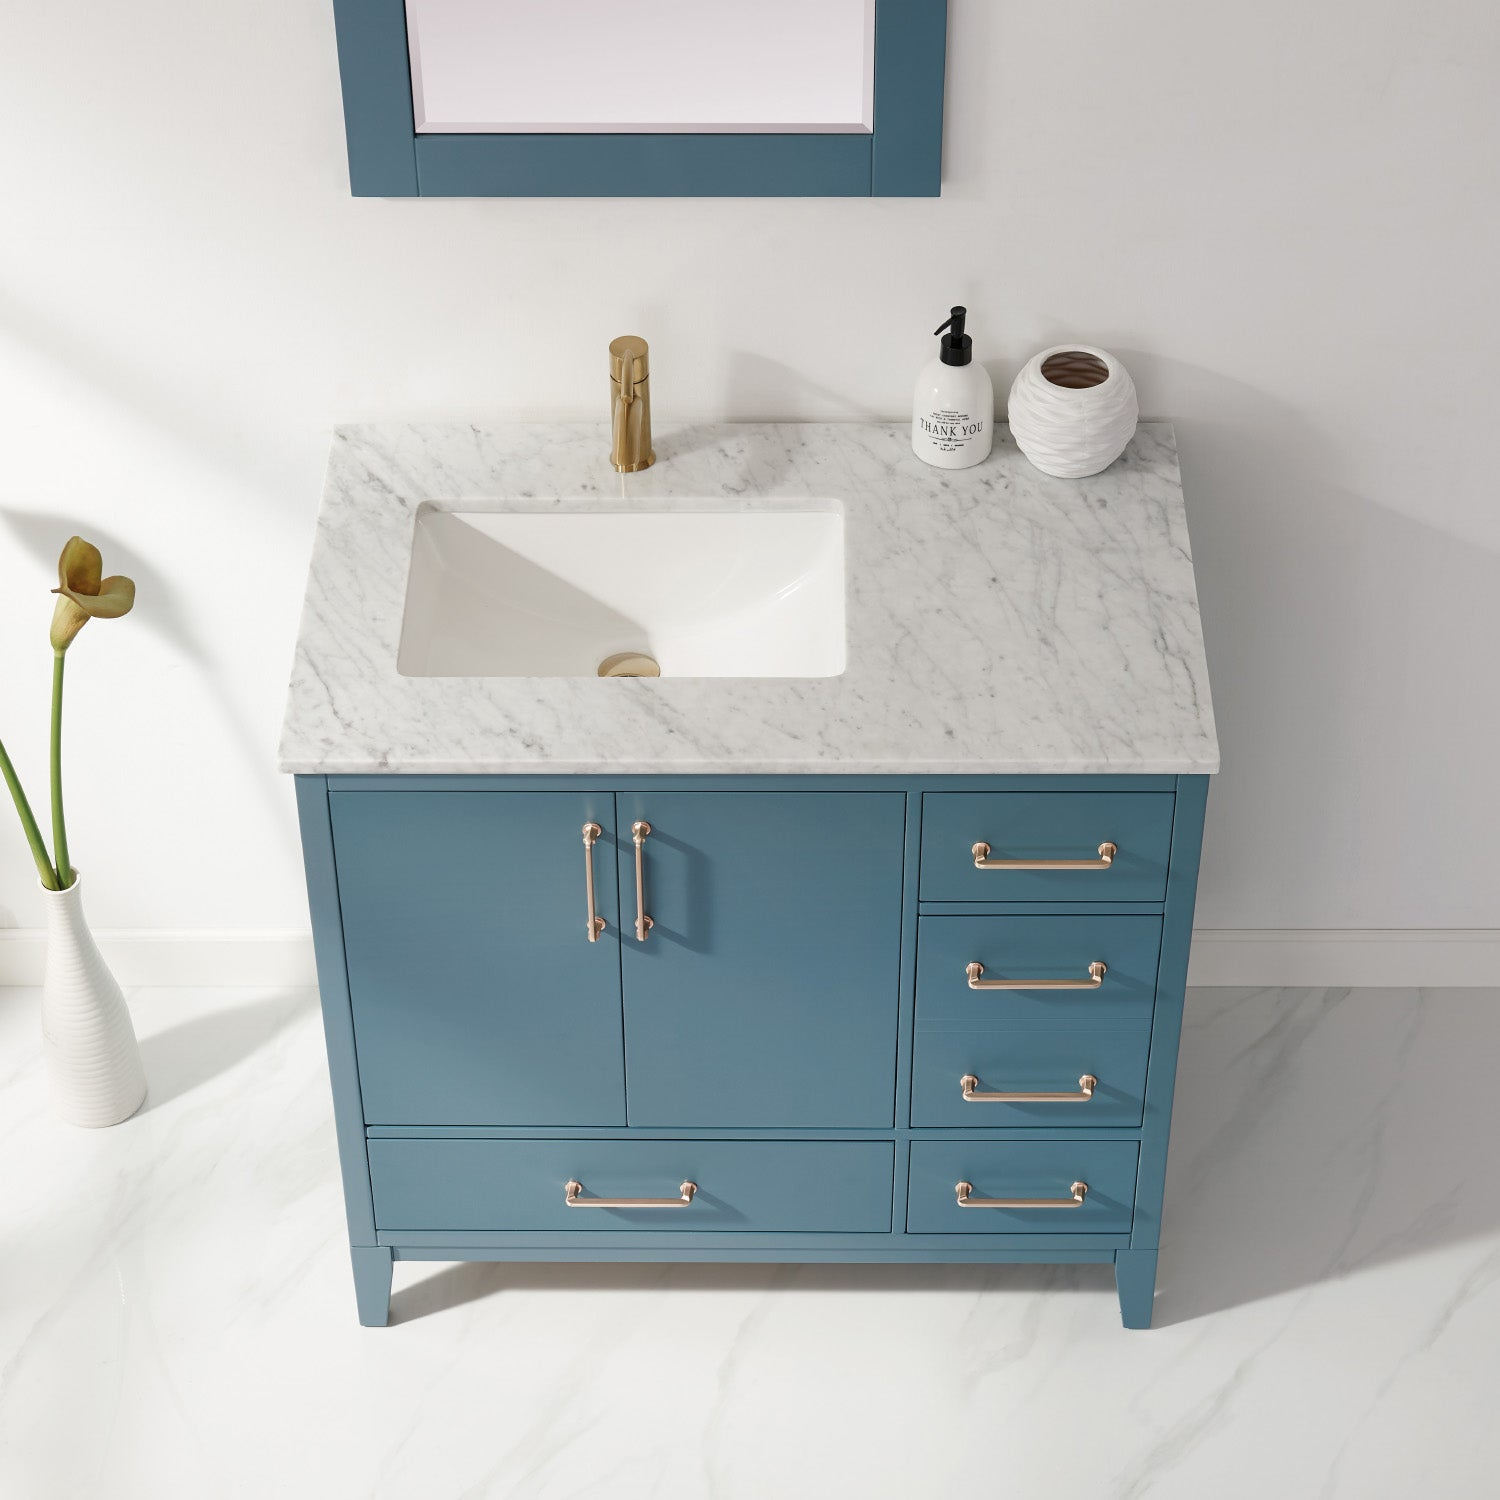 "Sutton 36"" Single Bathroom Vanity Set in Royal Green and Carrara White Marble Countertop with Mirror"